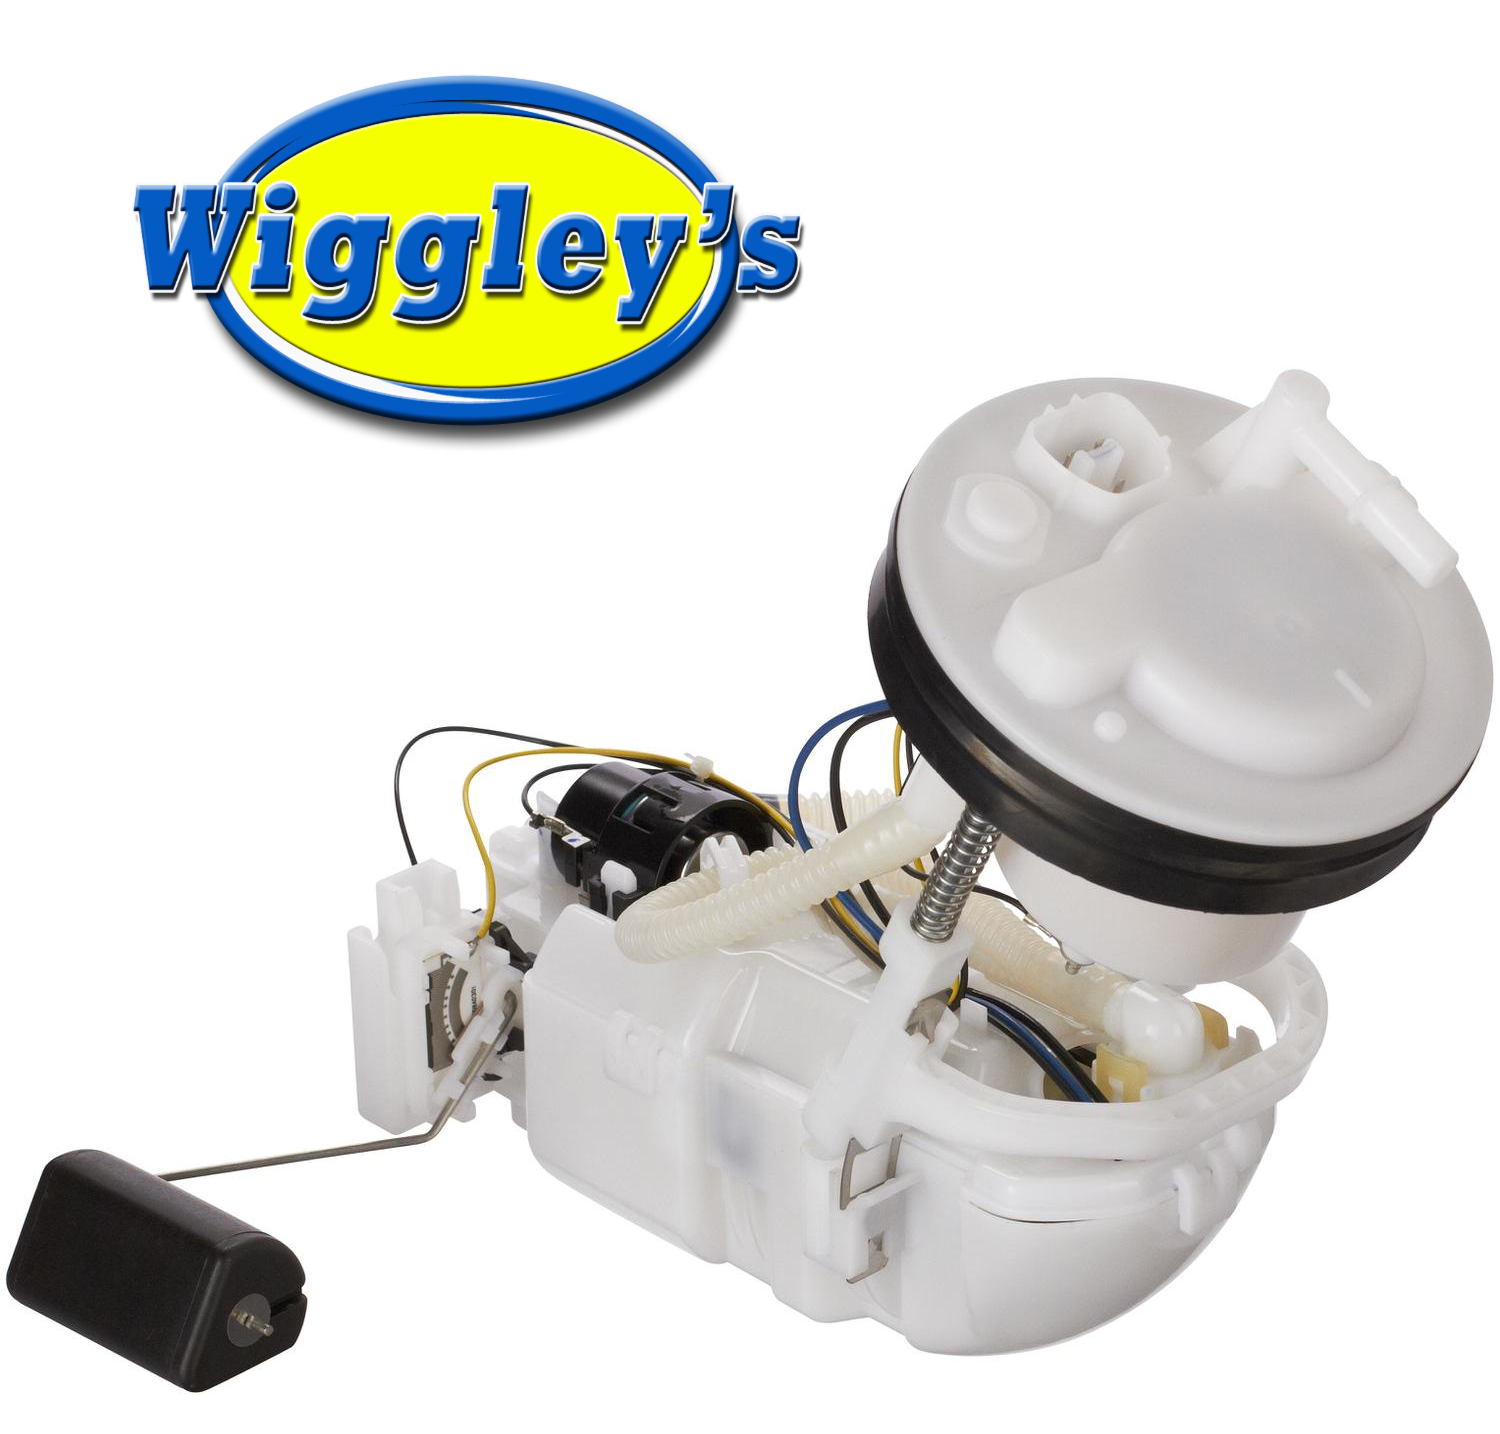 FUEL PUMP MODULE ASSEMBLY 150308 FOR 01 02 03 04 05 HONDA CIVIC 1.3L 1.7L 2.0L